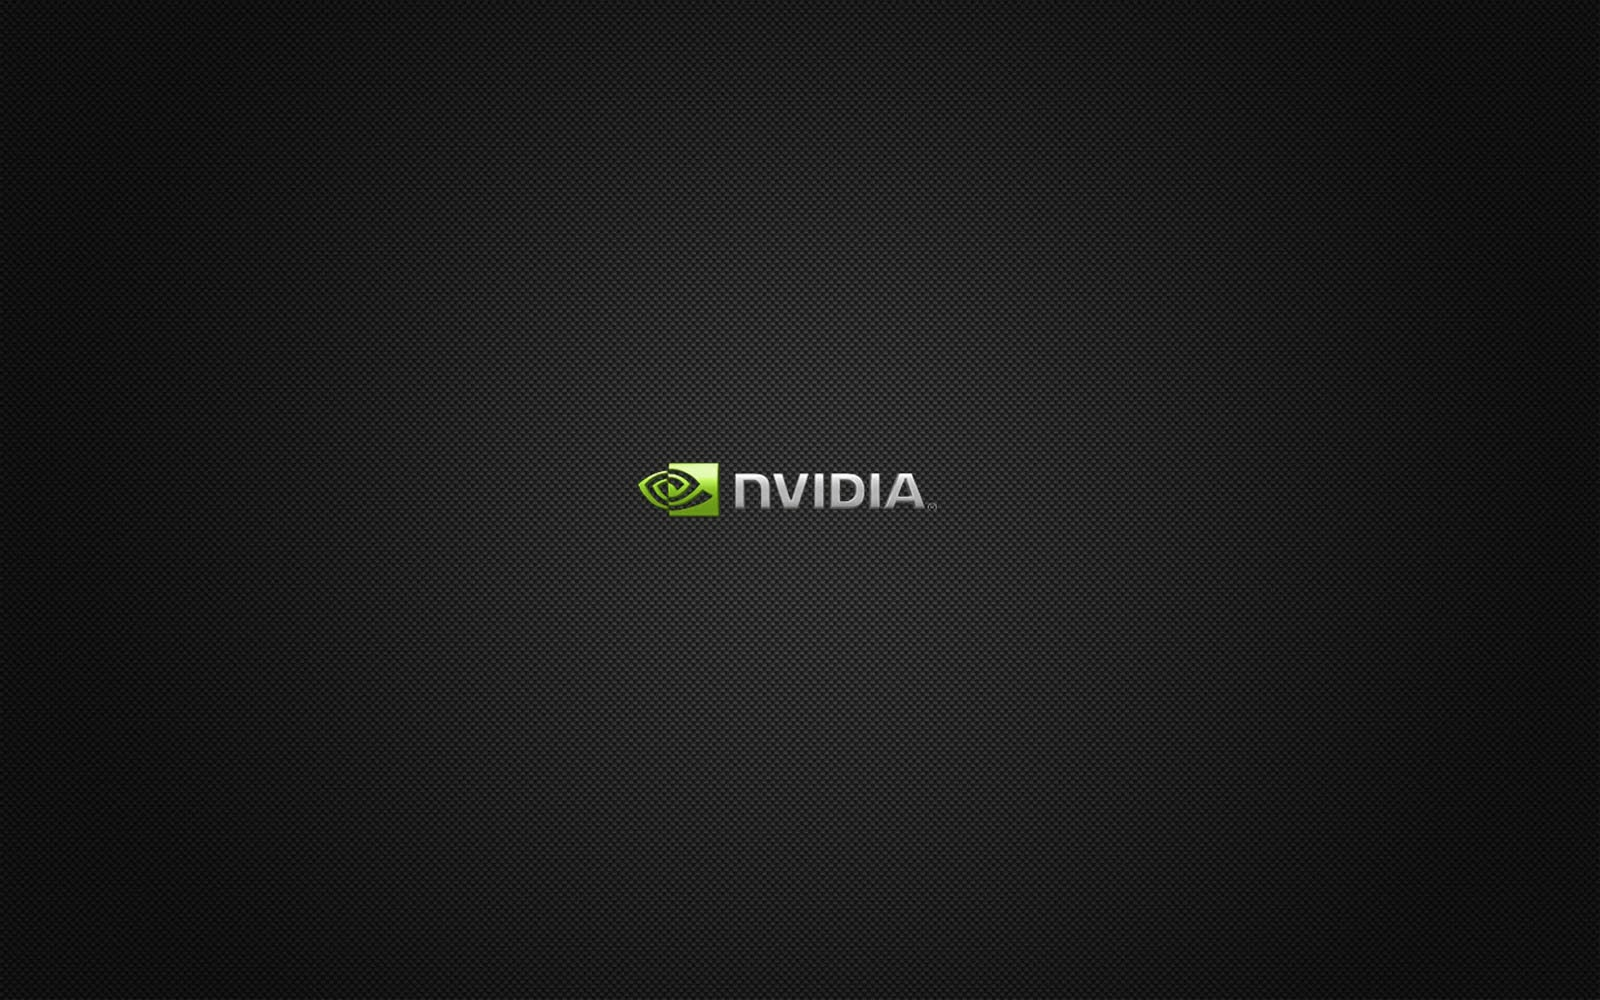 Home Design Free For Mac Wallpapers Nvidia Wallpapers